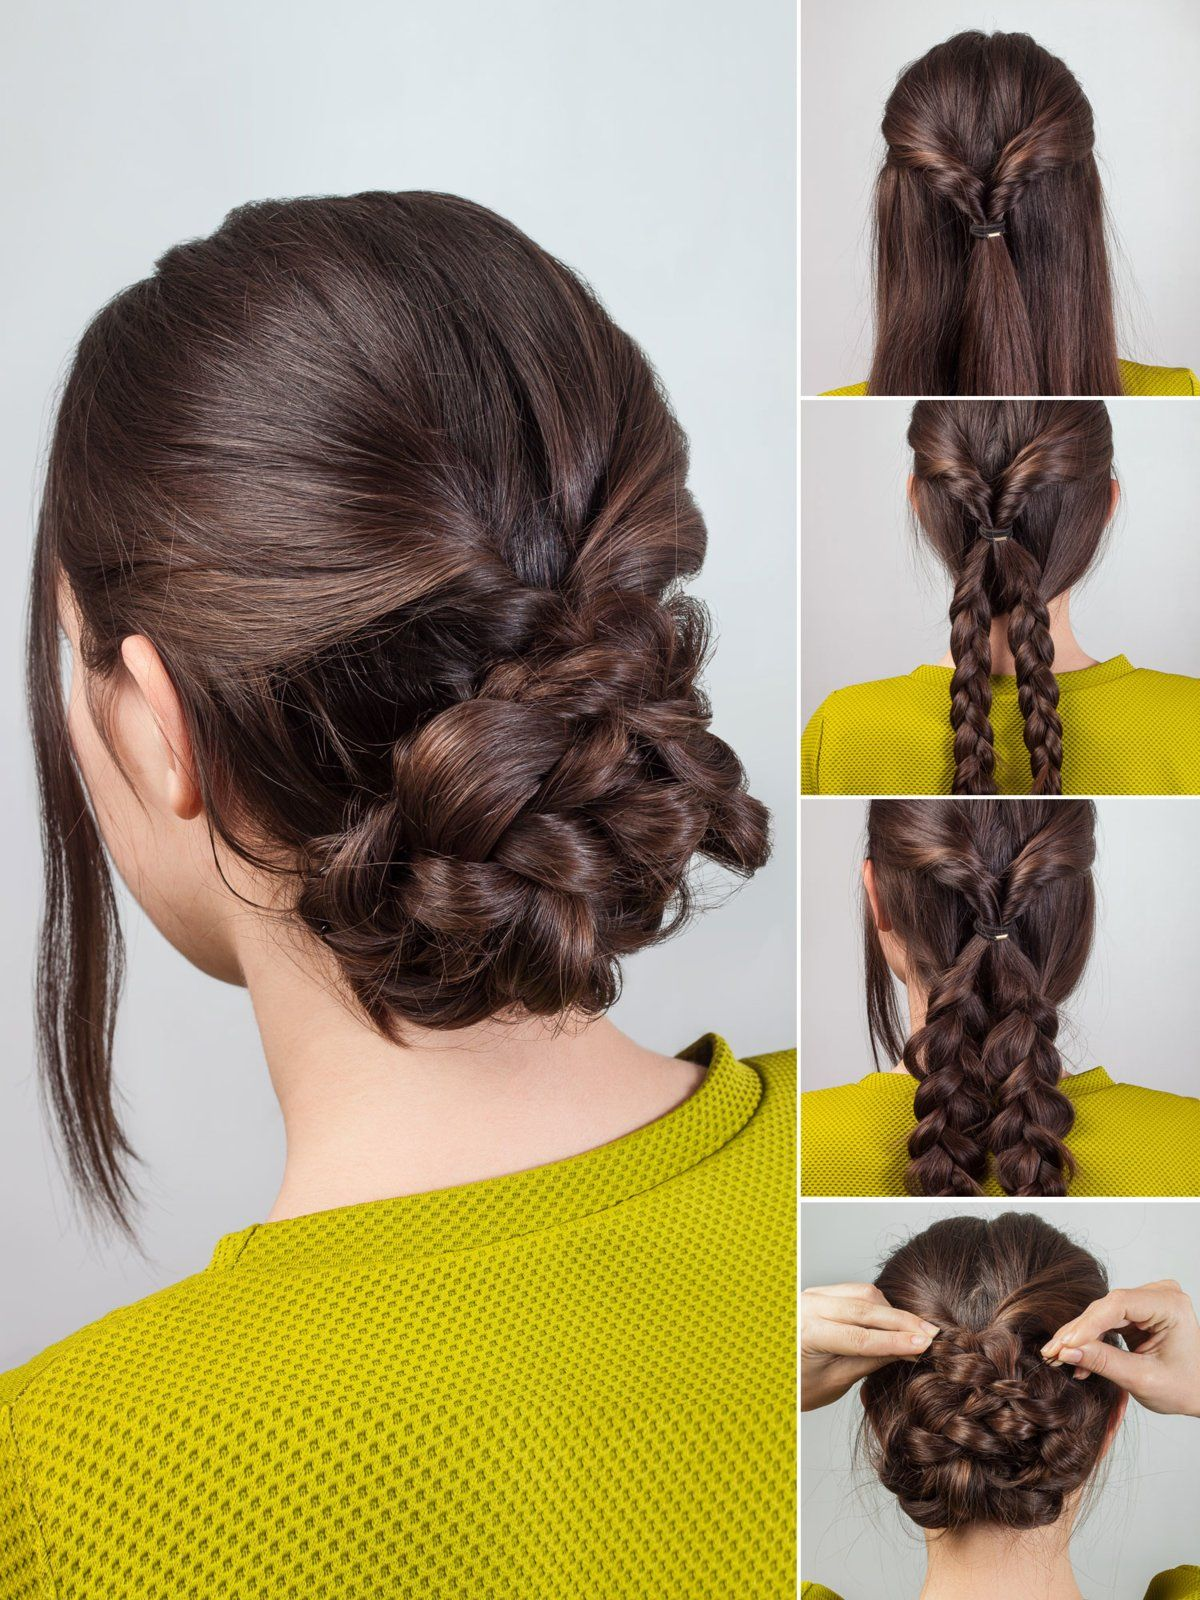 Absolute trendfrisur in nur minuten hair style hair dos and